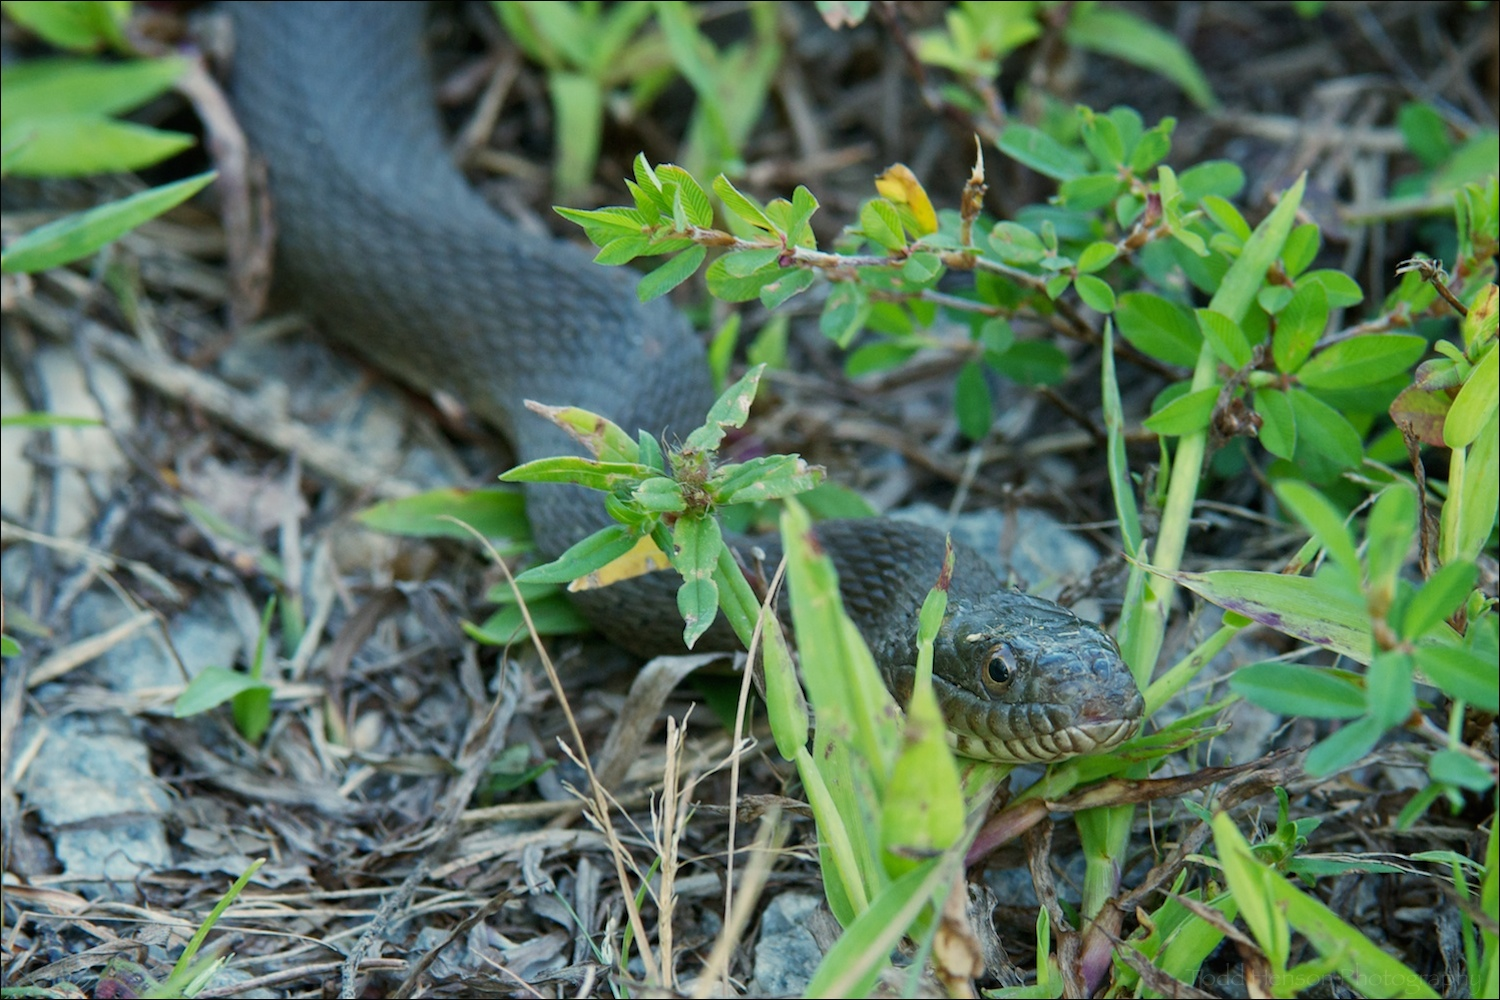 Northern Watersnake on trail just off wetlands.